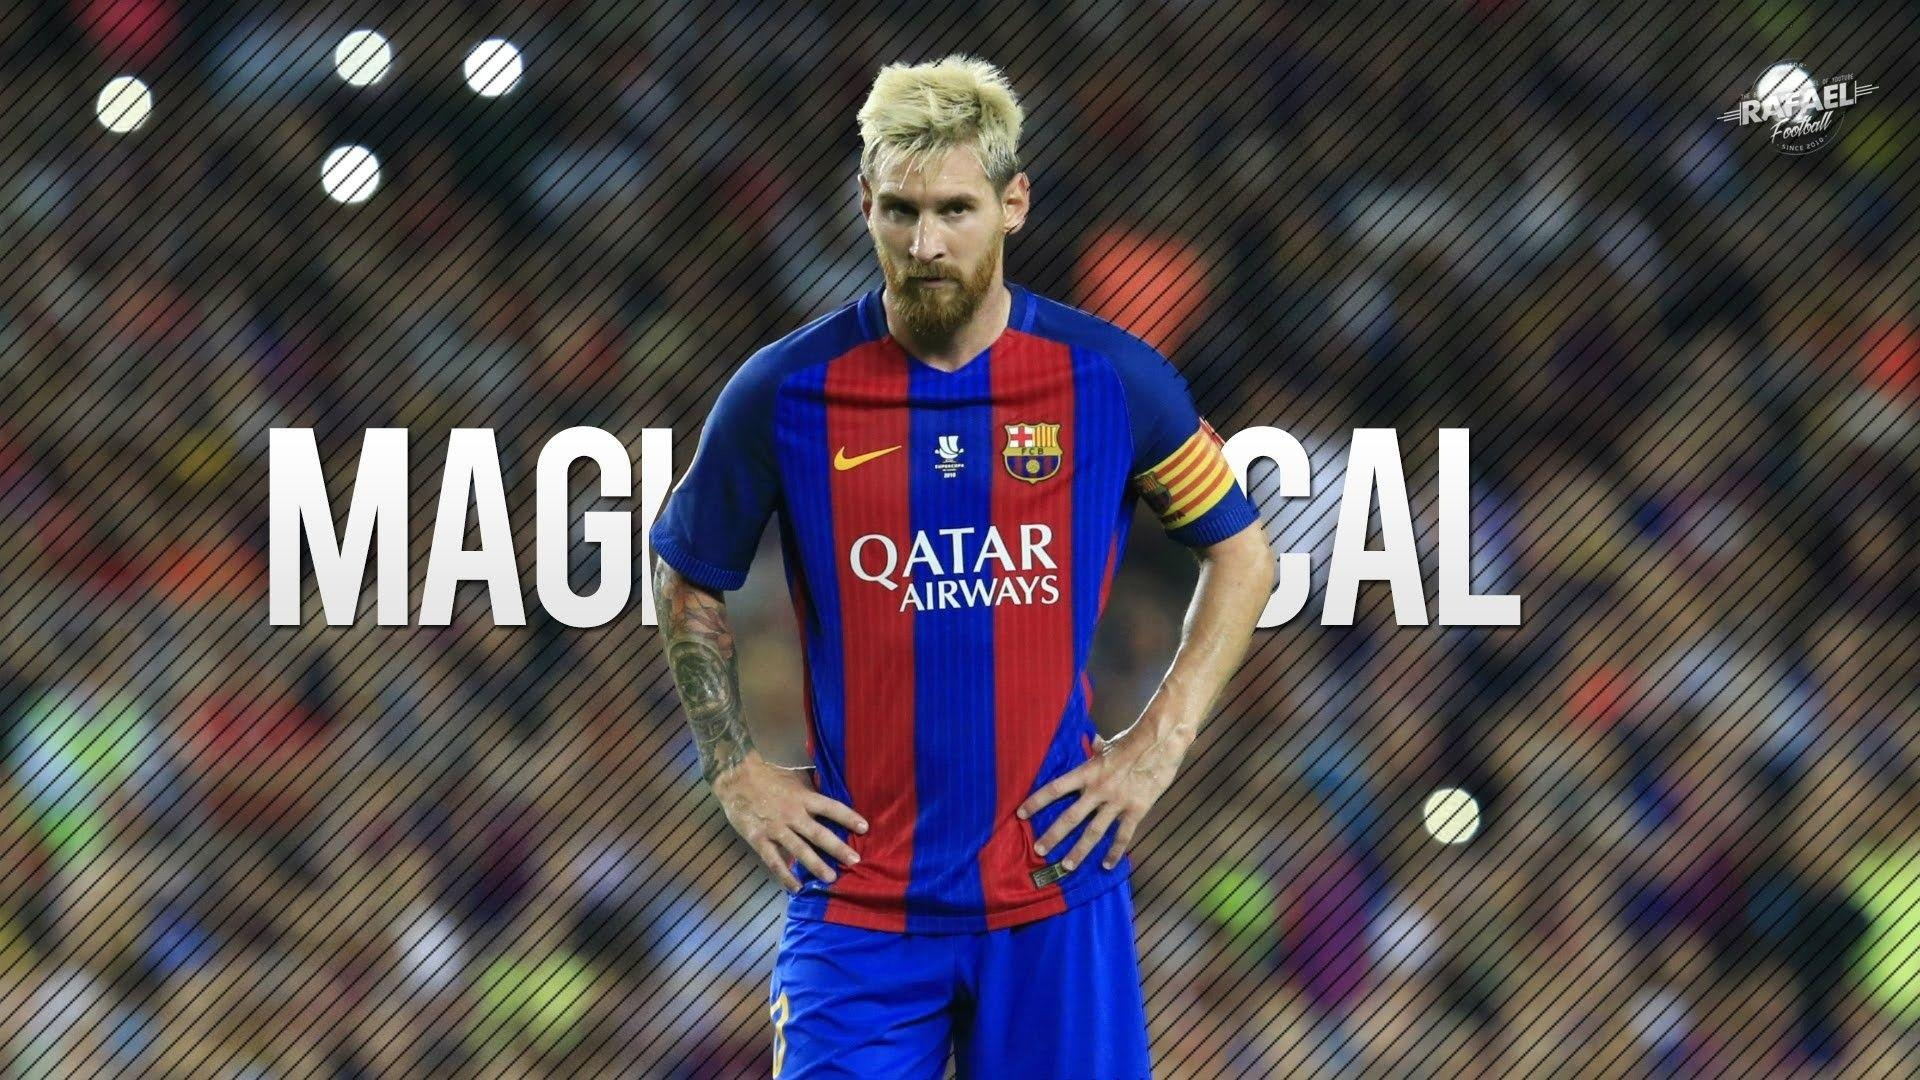 Messi Hd Wallpapers 2017 For PC ✓ Gadget and PC Wallpapers